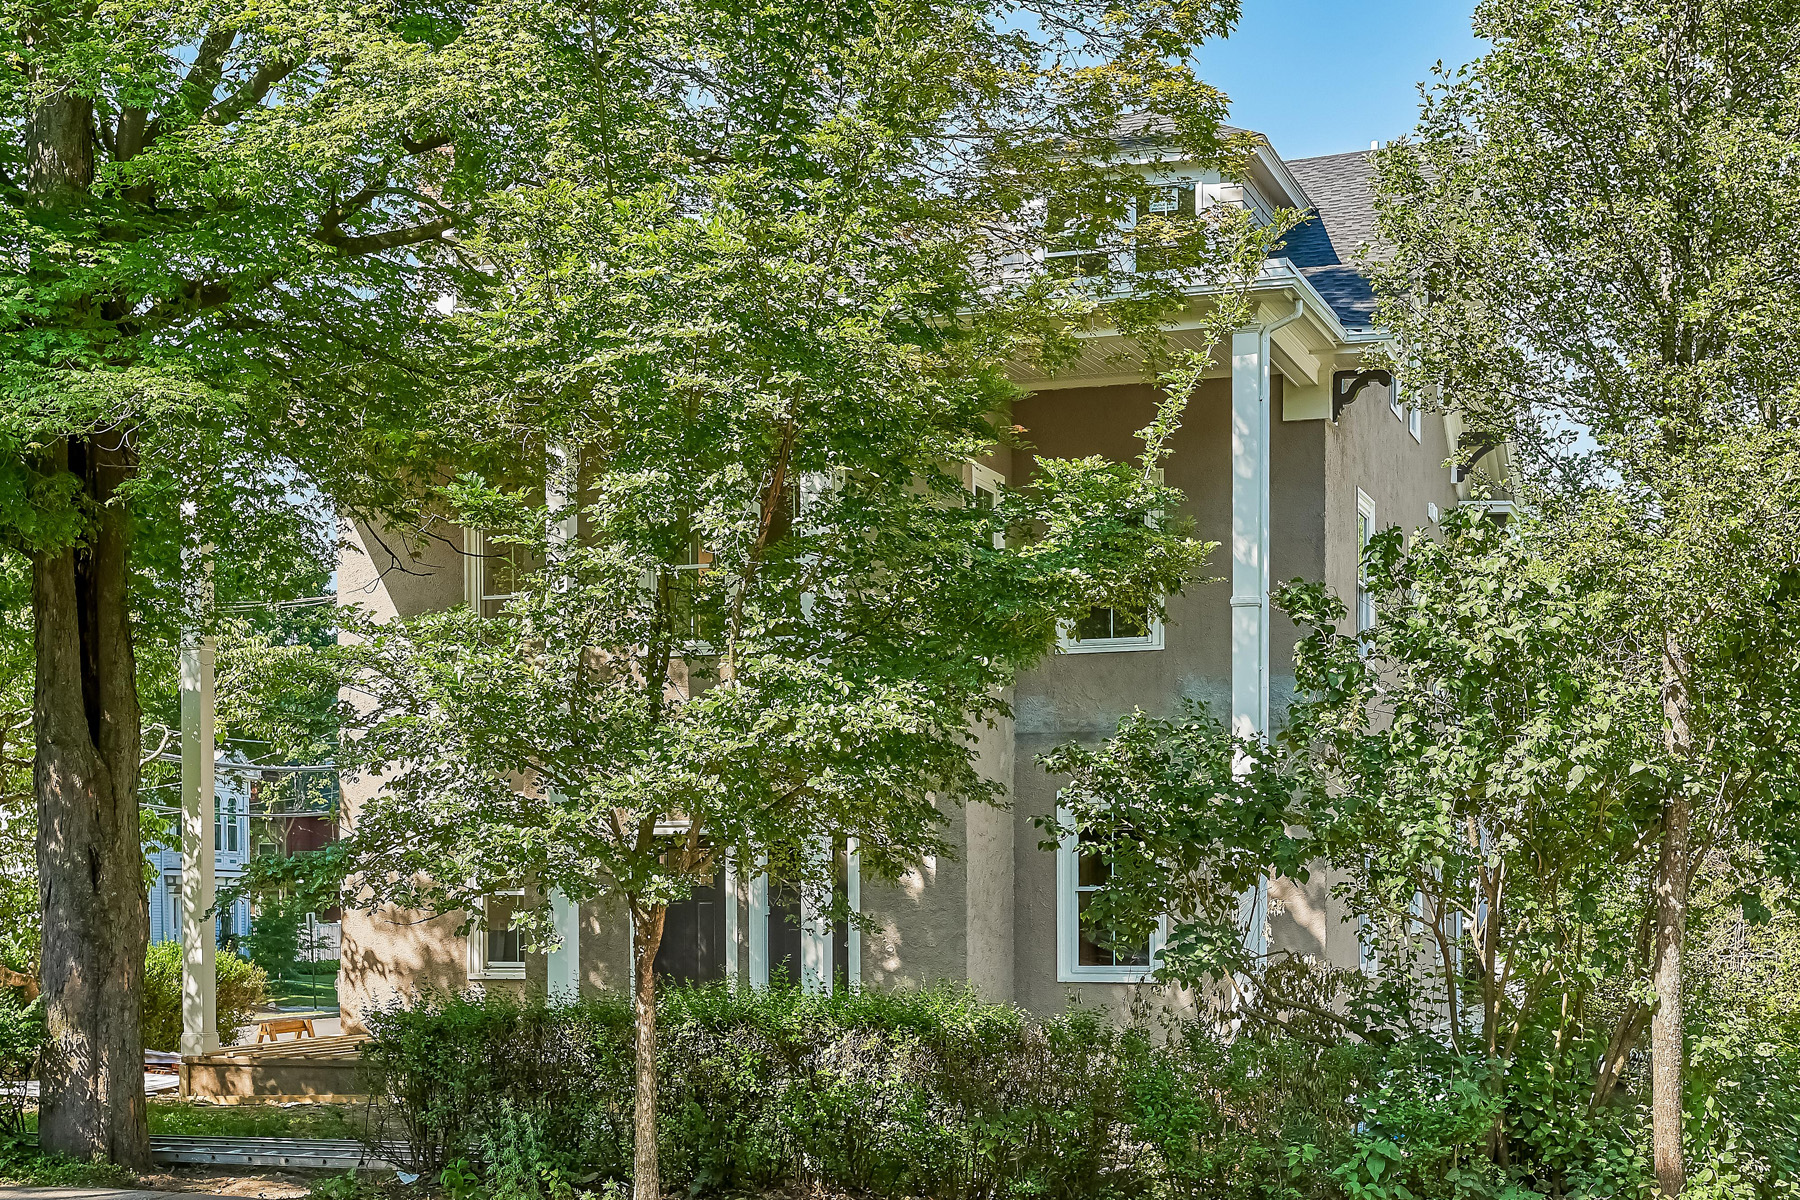 Multi-Family Home for Sale at 41 Cypress St, Newton Newton, Massachusetts 02459 United States